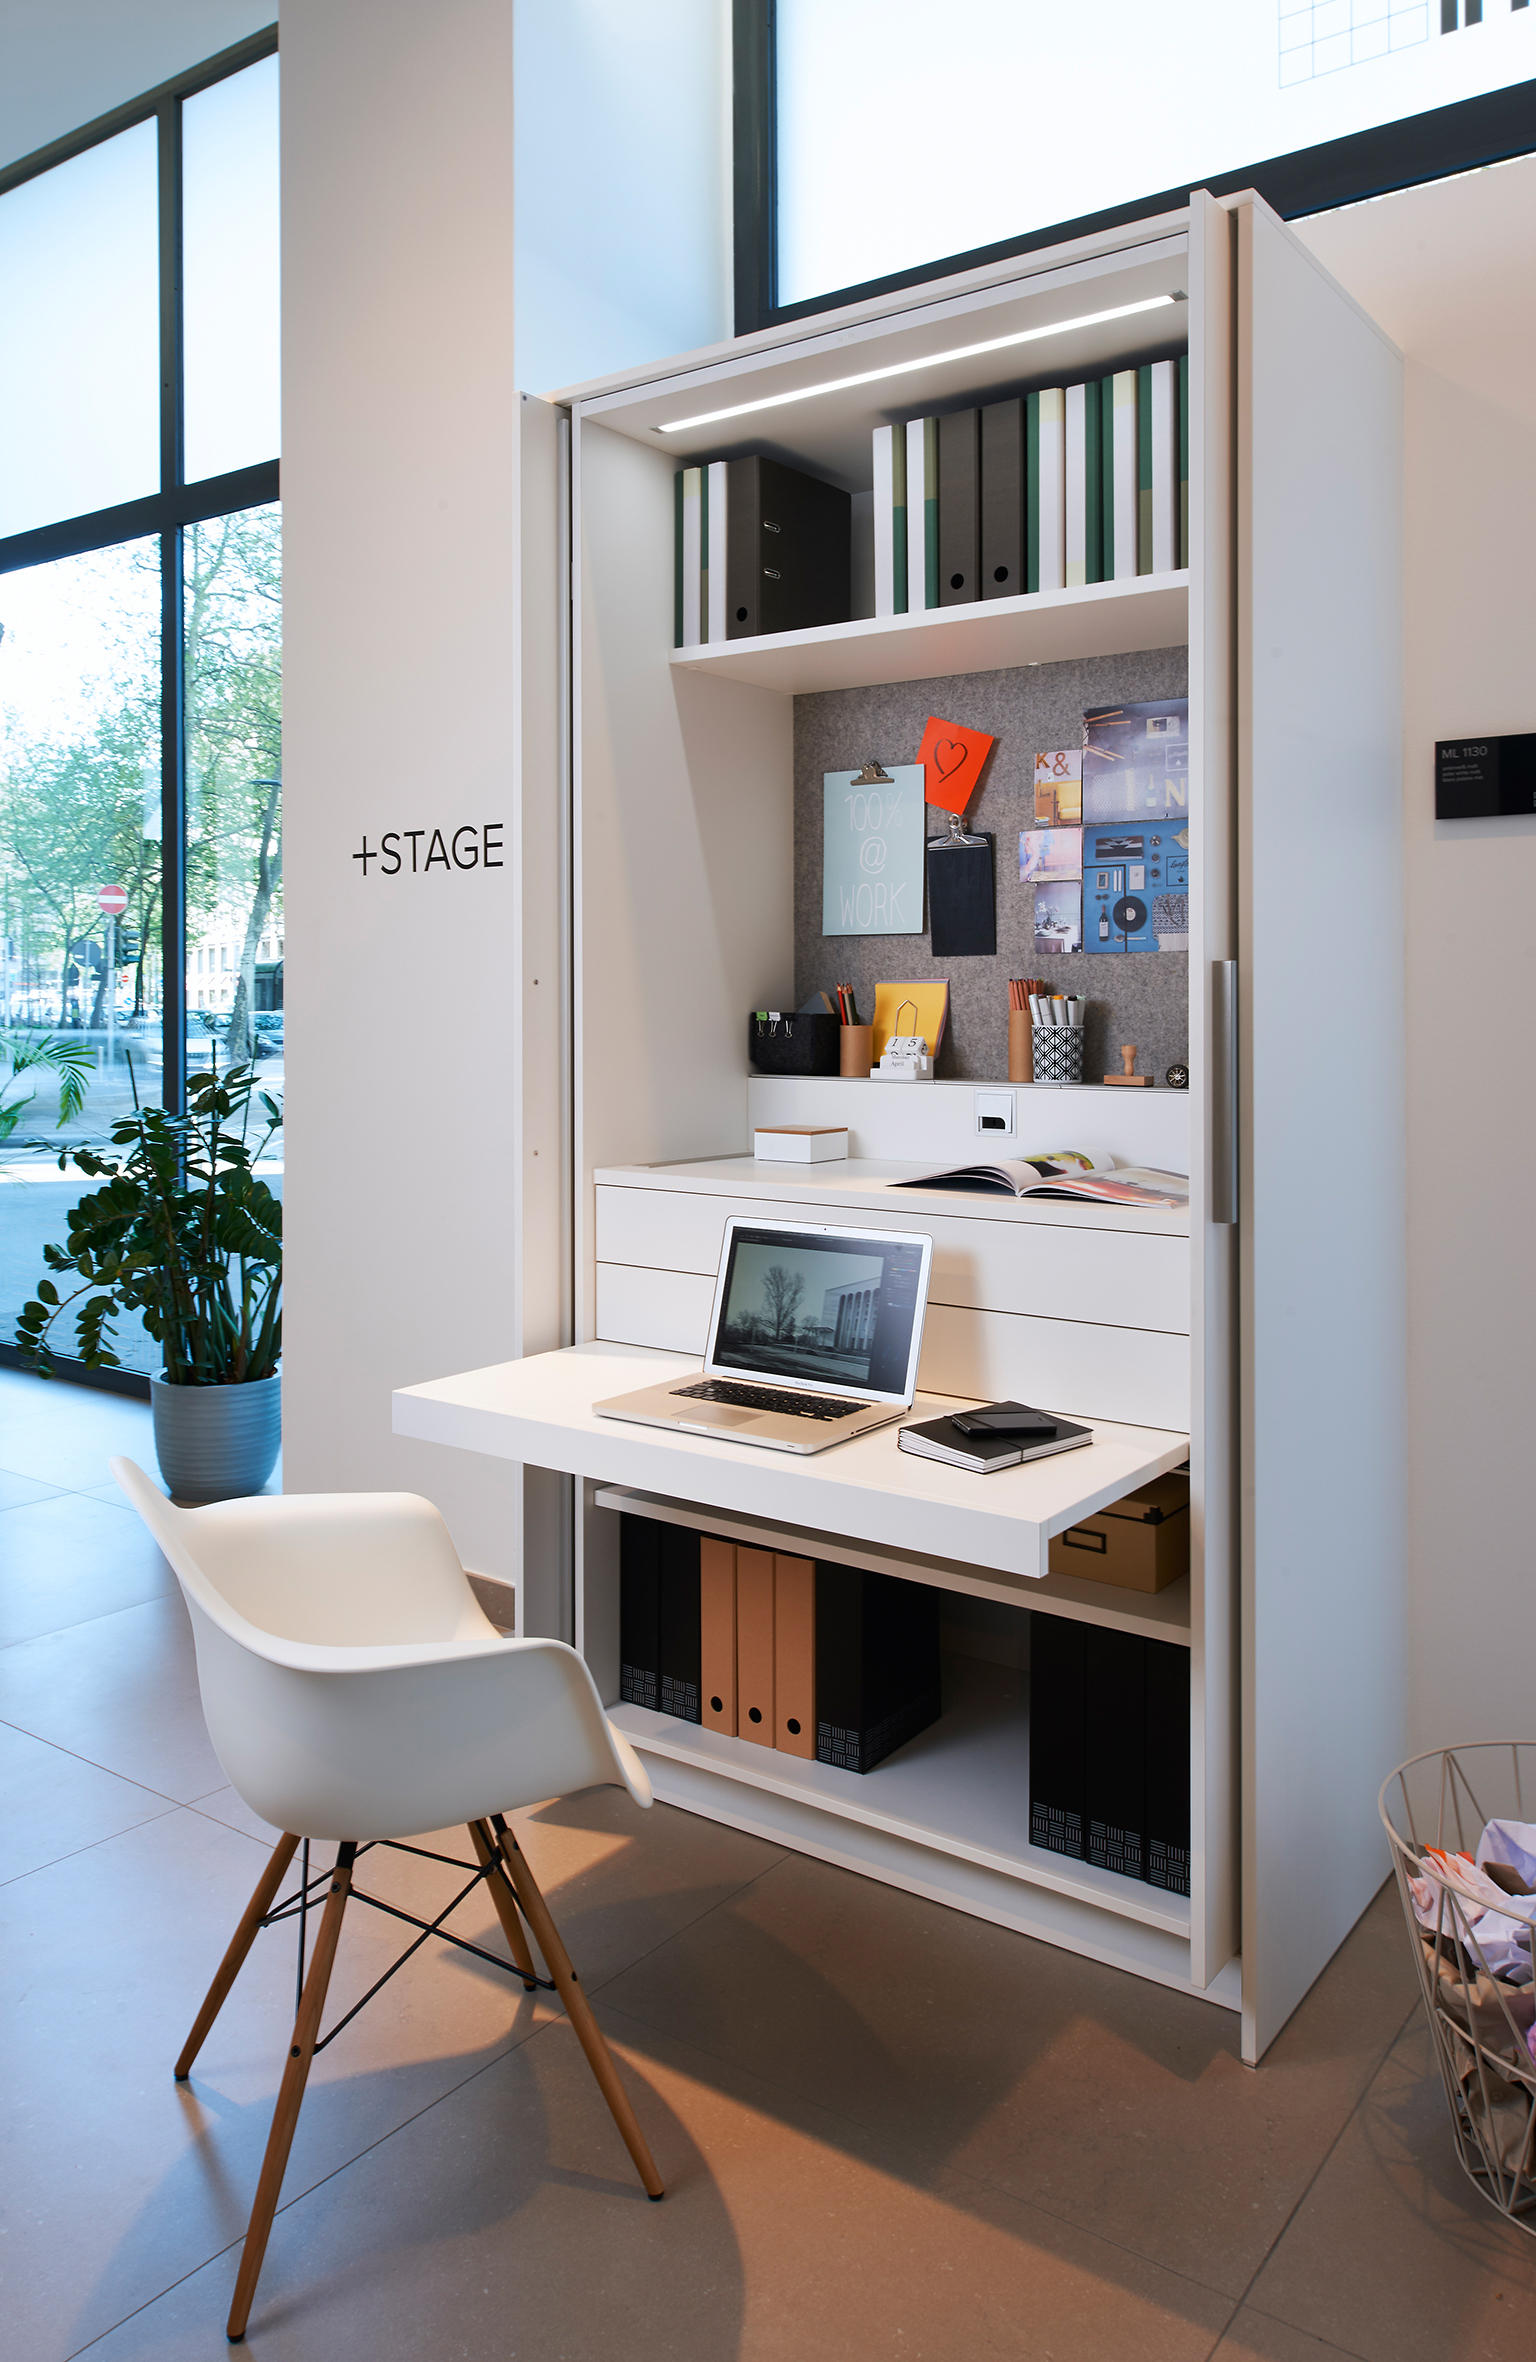 Stage Office Desks From Poggenpohl Architonic